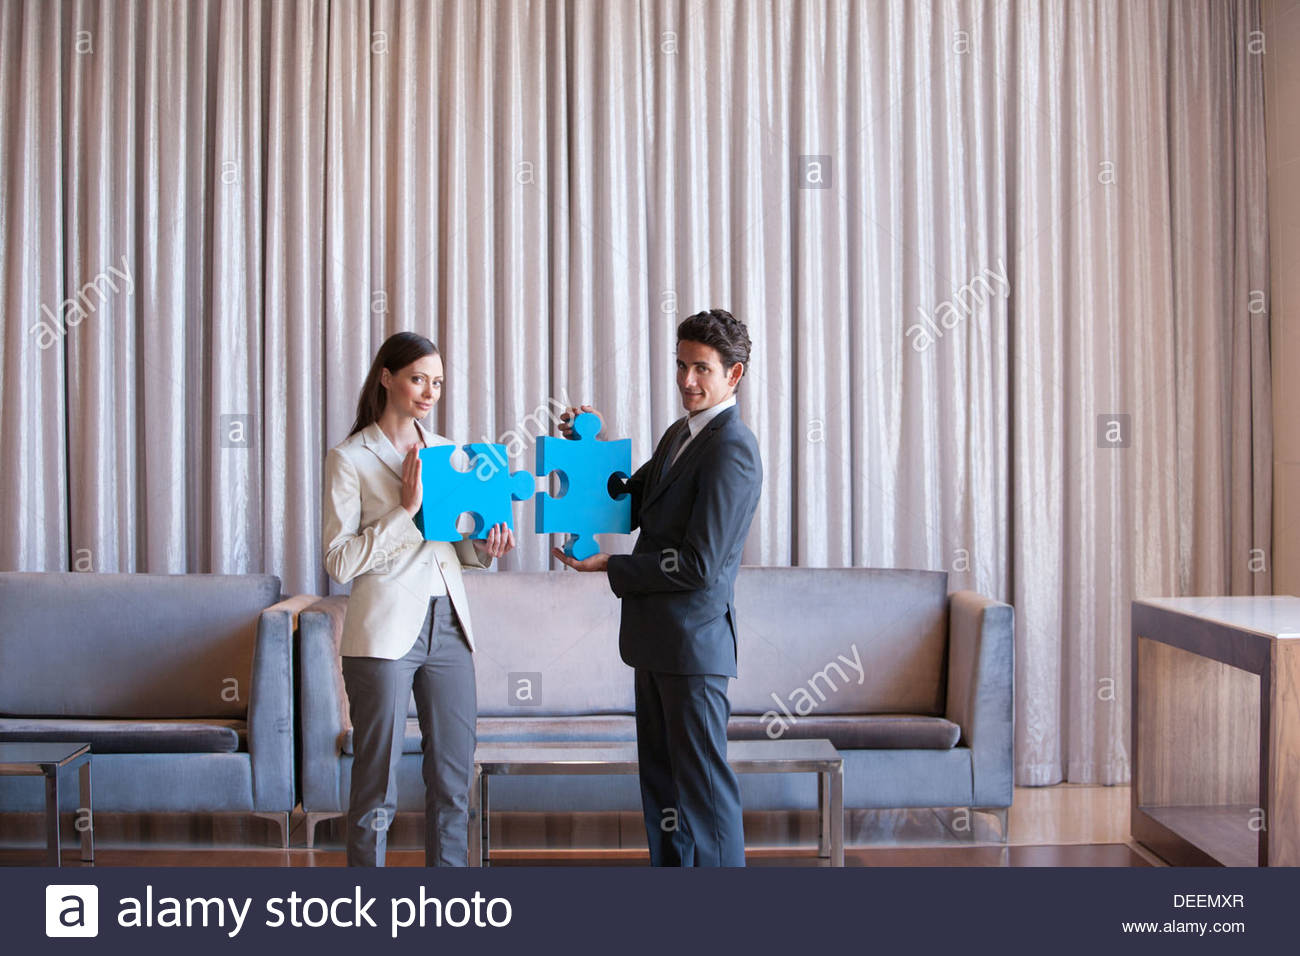 Business people holding jigsaw puzzle pieces in hotel lobby - Stock Image